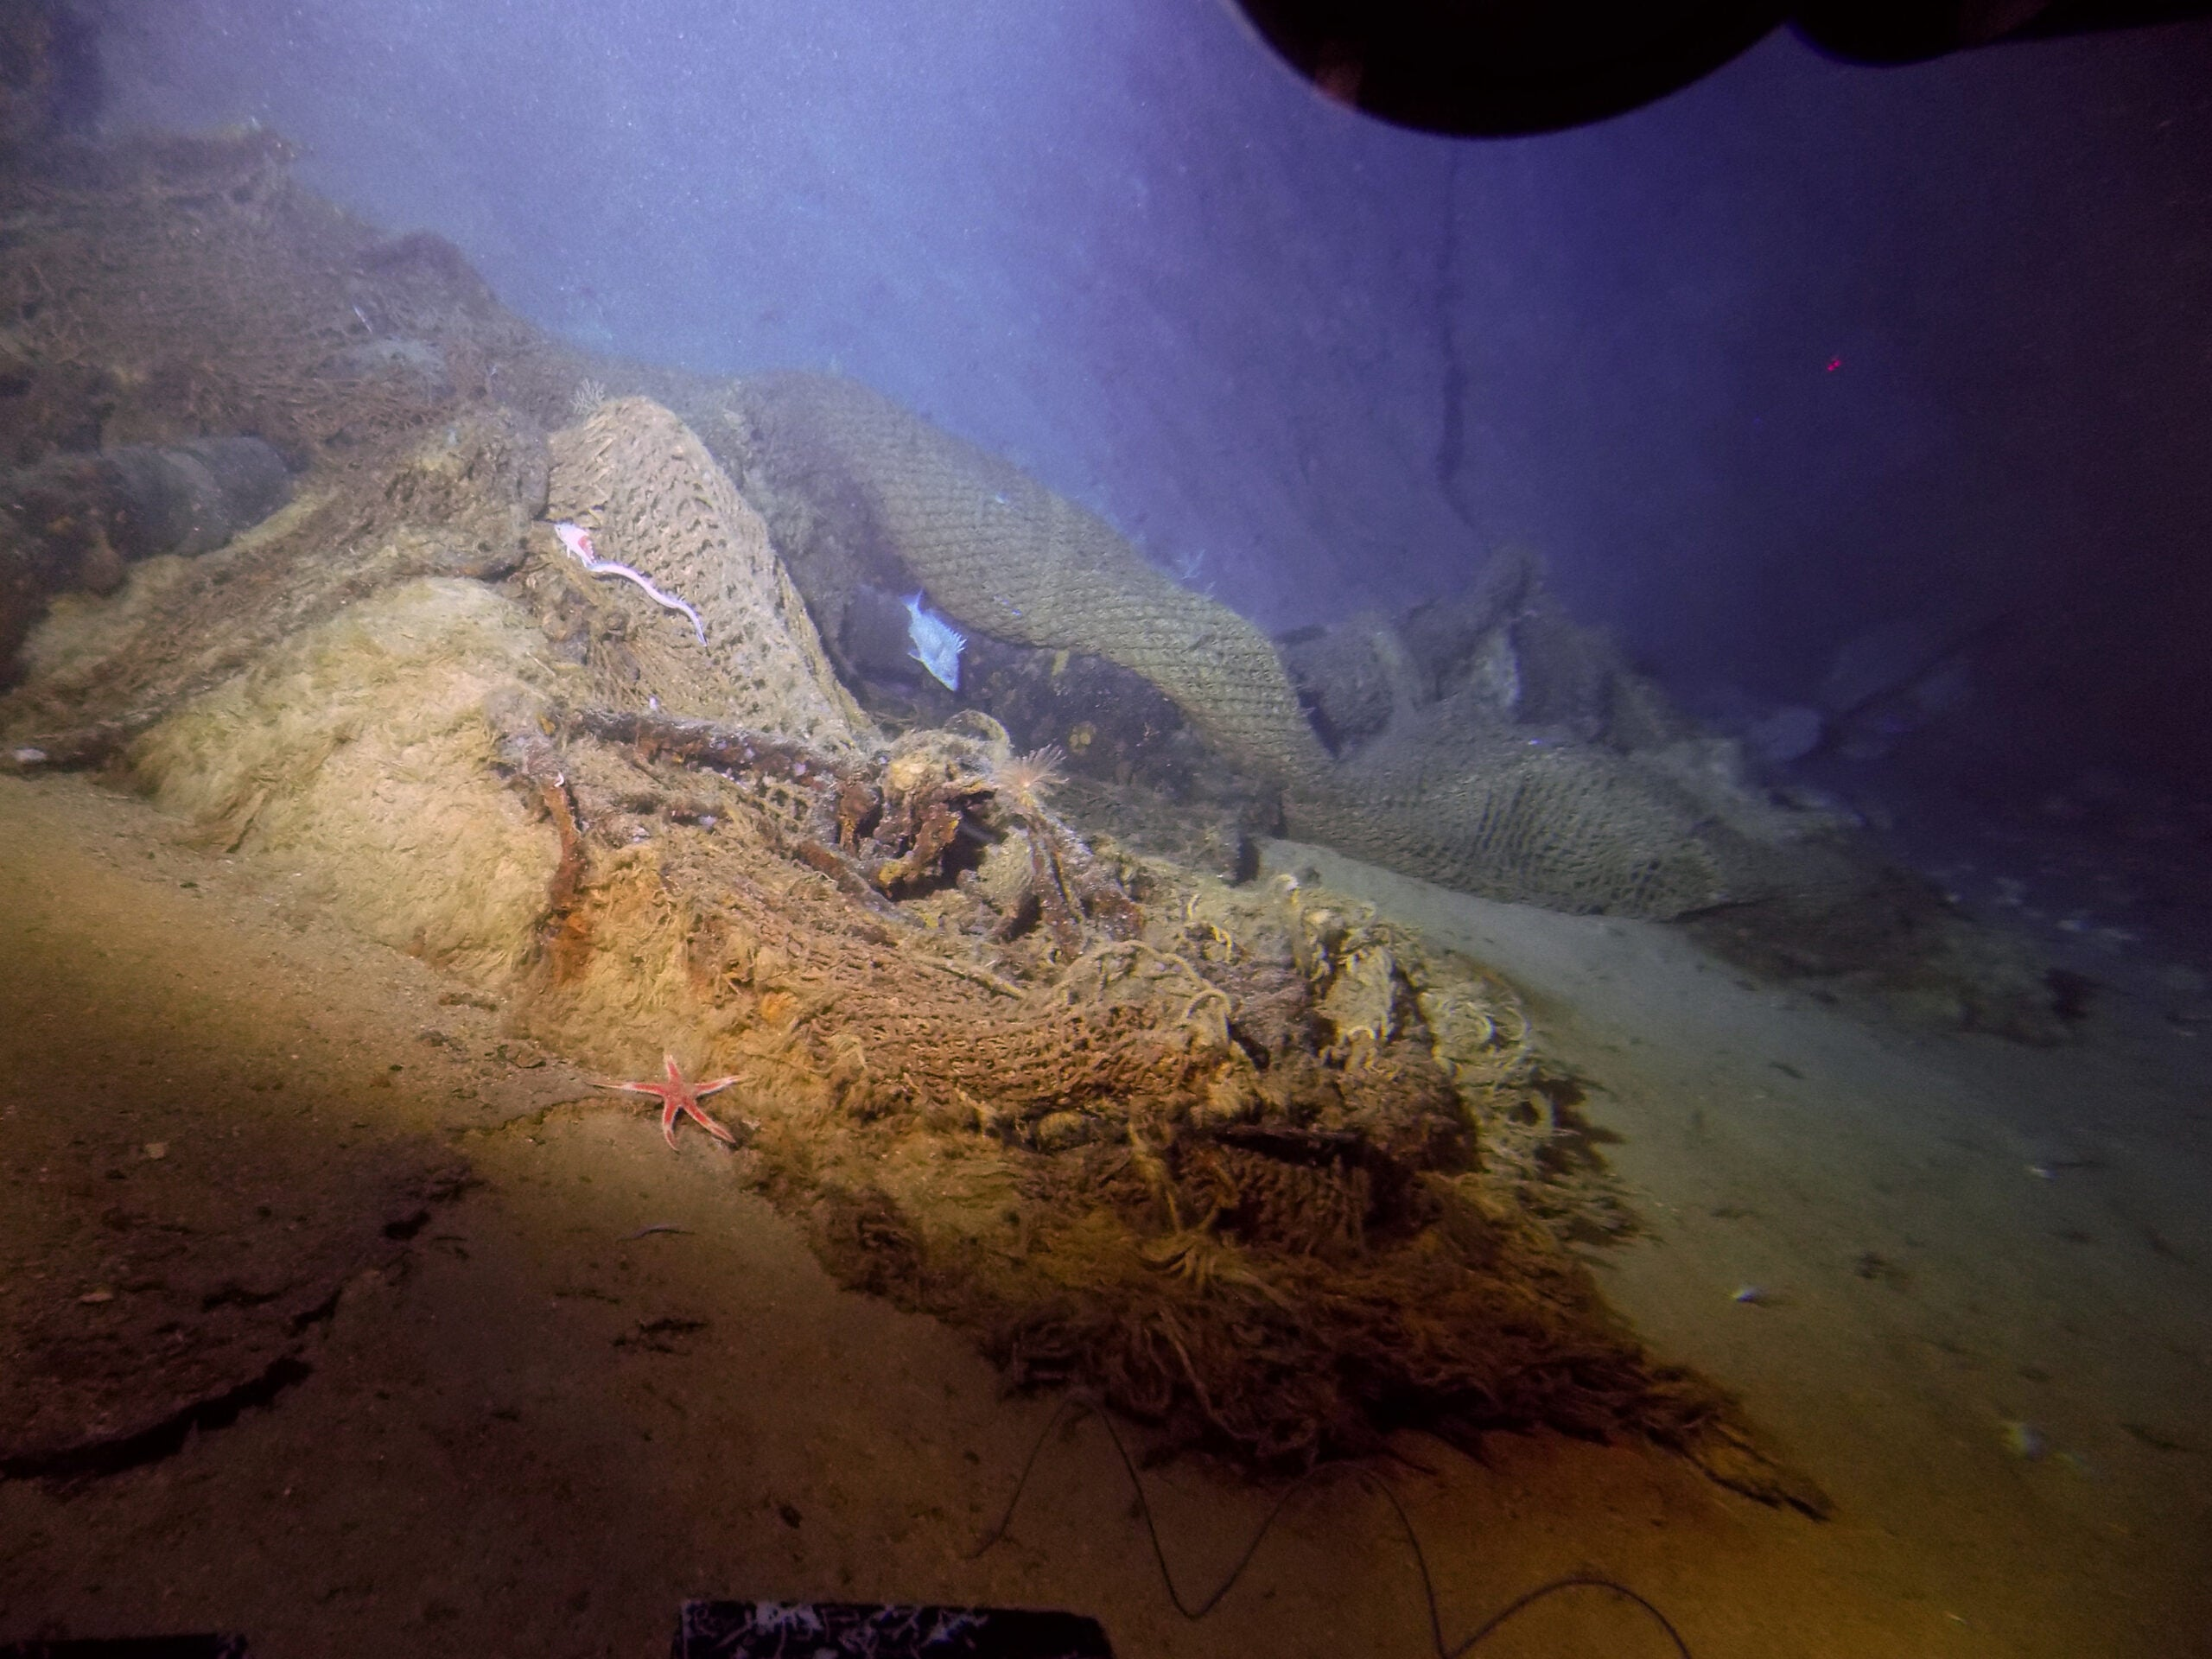 Fishing nets leave precious marine habitats broken and scarred—but some are coming back to life